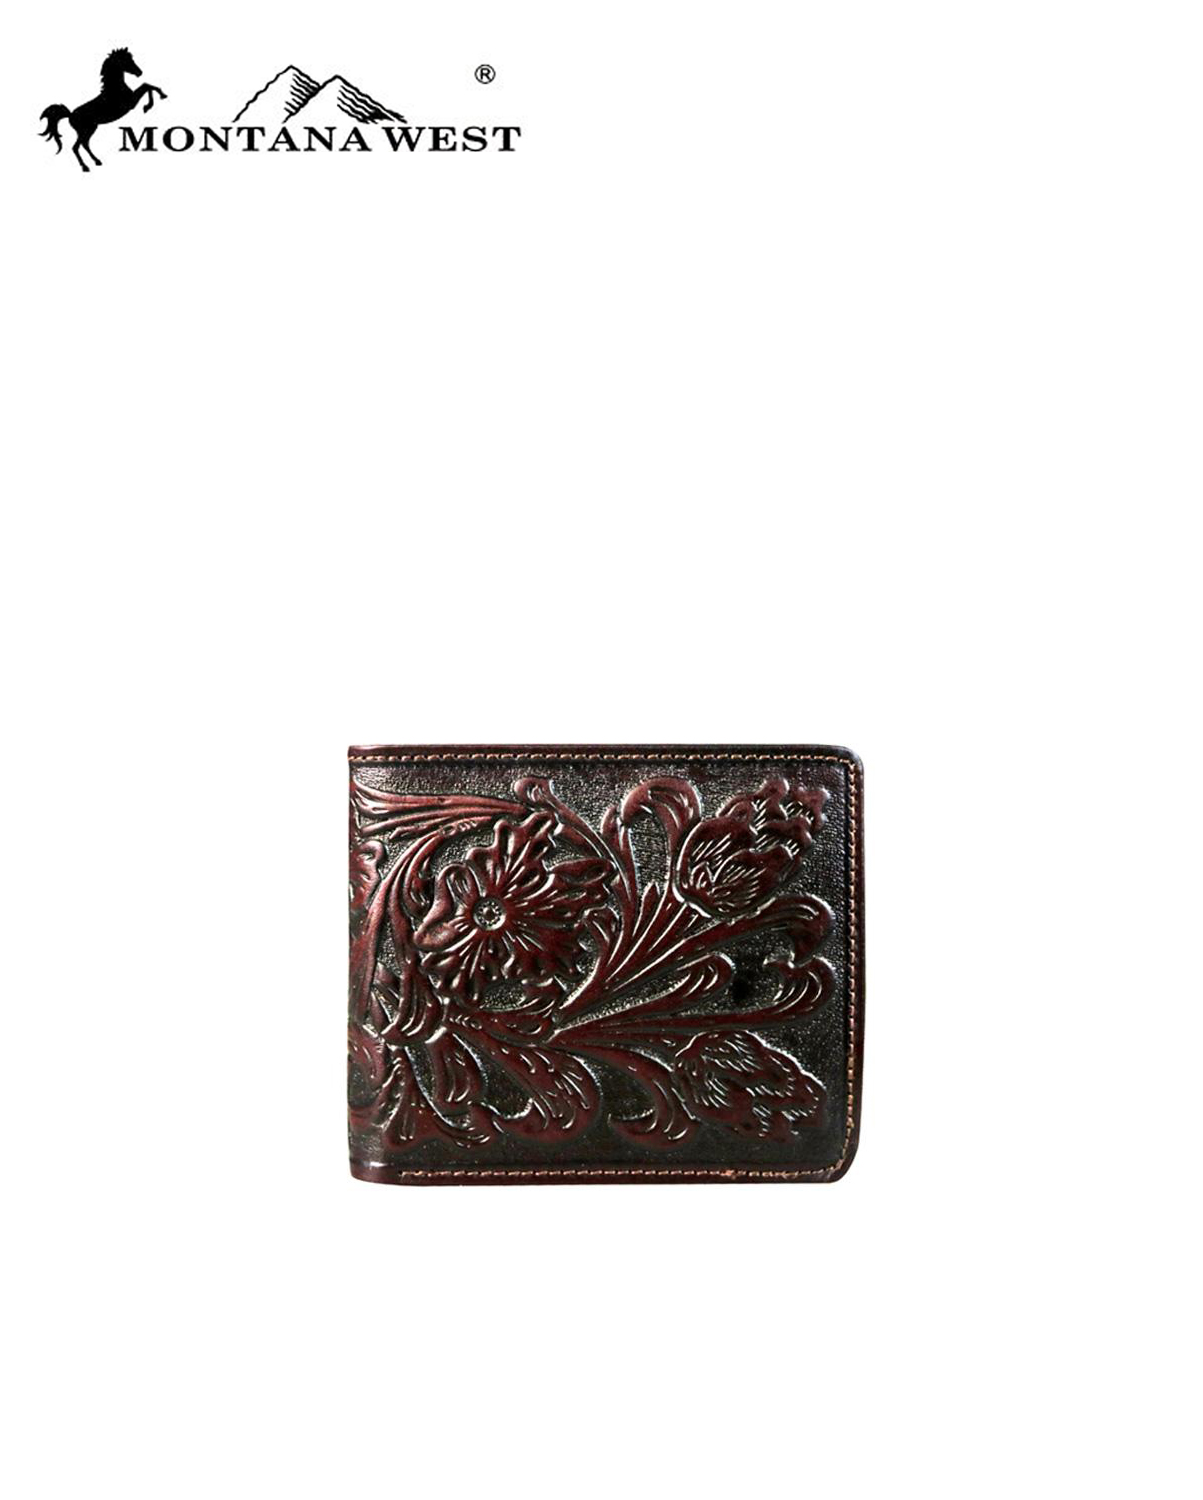 PWSW005(CF)-MW-wholesale-montana-west-mens-wallet-phone-charging-genuine-leather-floral-tooled-solid-color-bi-fold(0).jpg